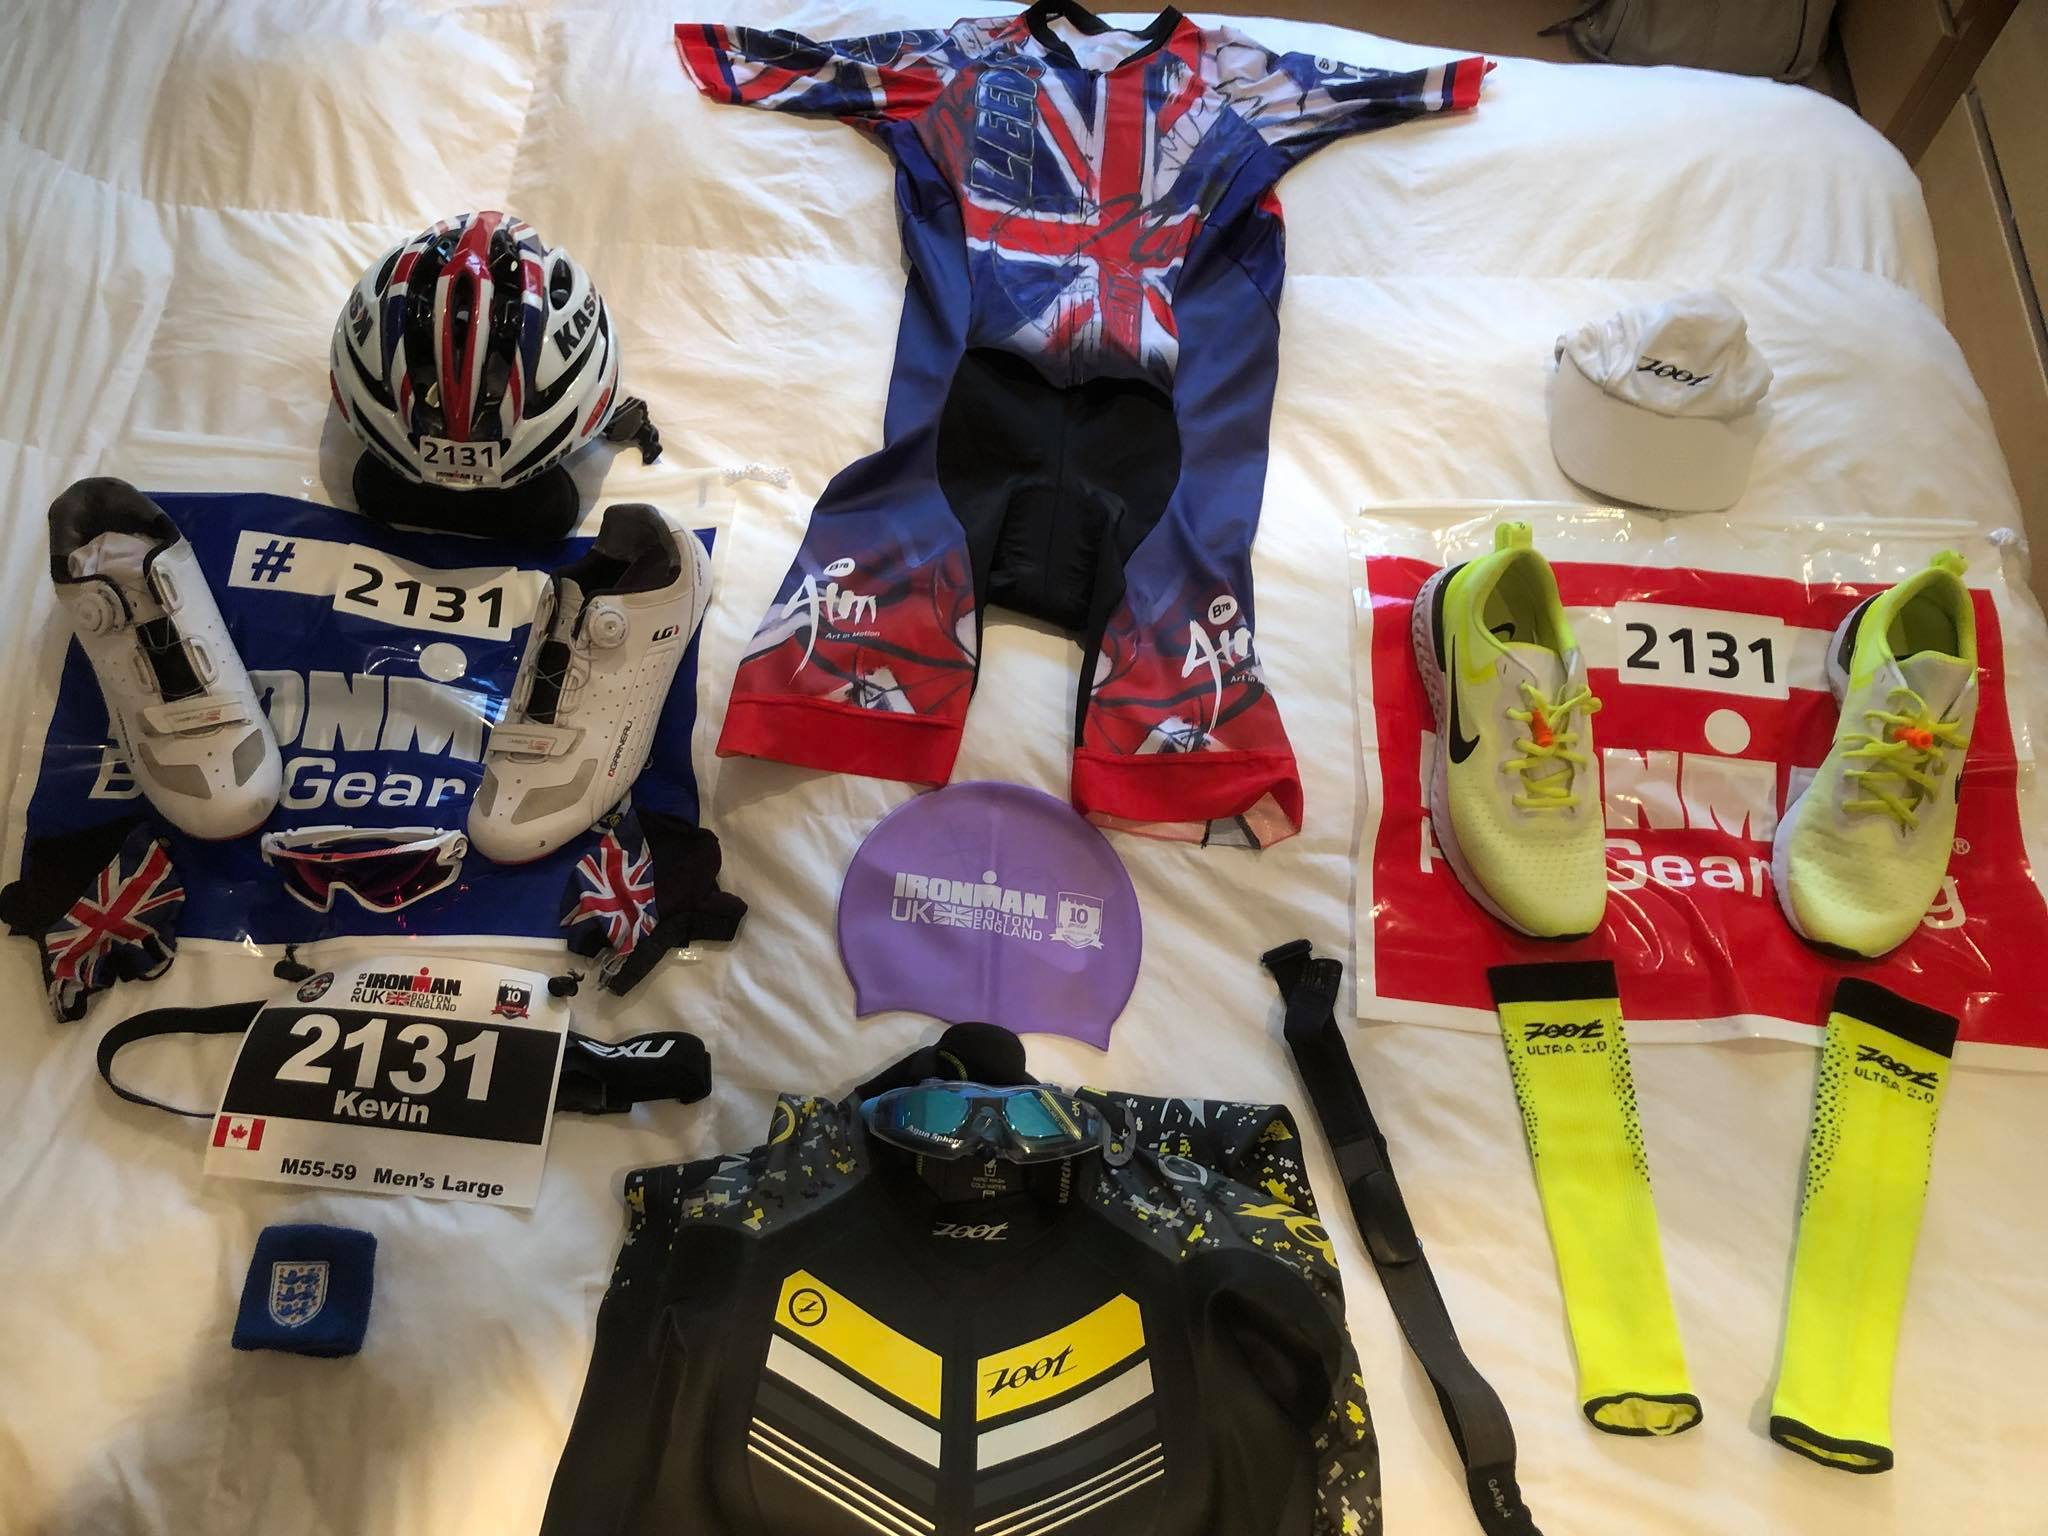 Coach_Terry_Wilson_Pursuit_of_The_Perfect_Race_IRONMAN_Bolton_United_Kingdom_Kevin_Nuun_Gear.jpg